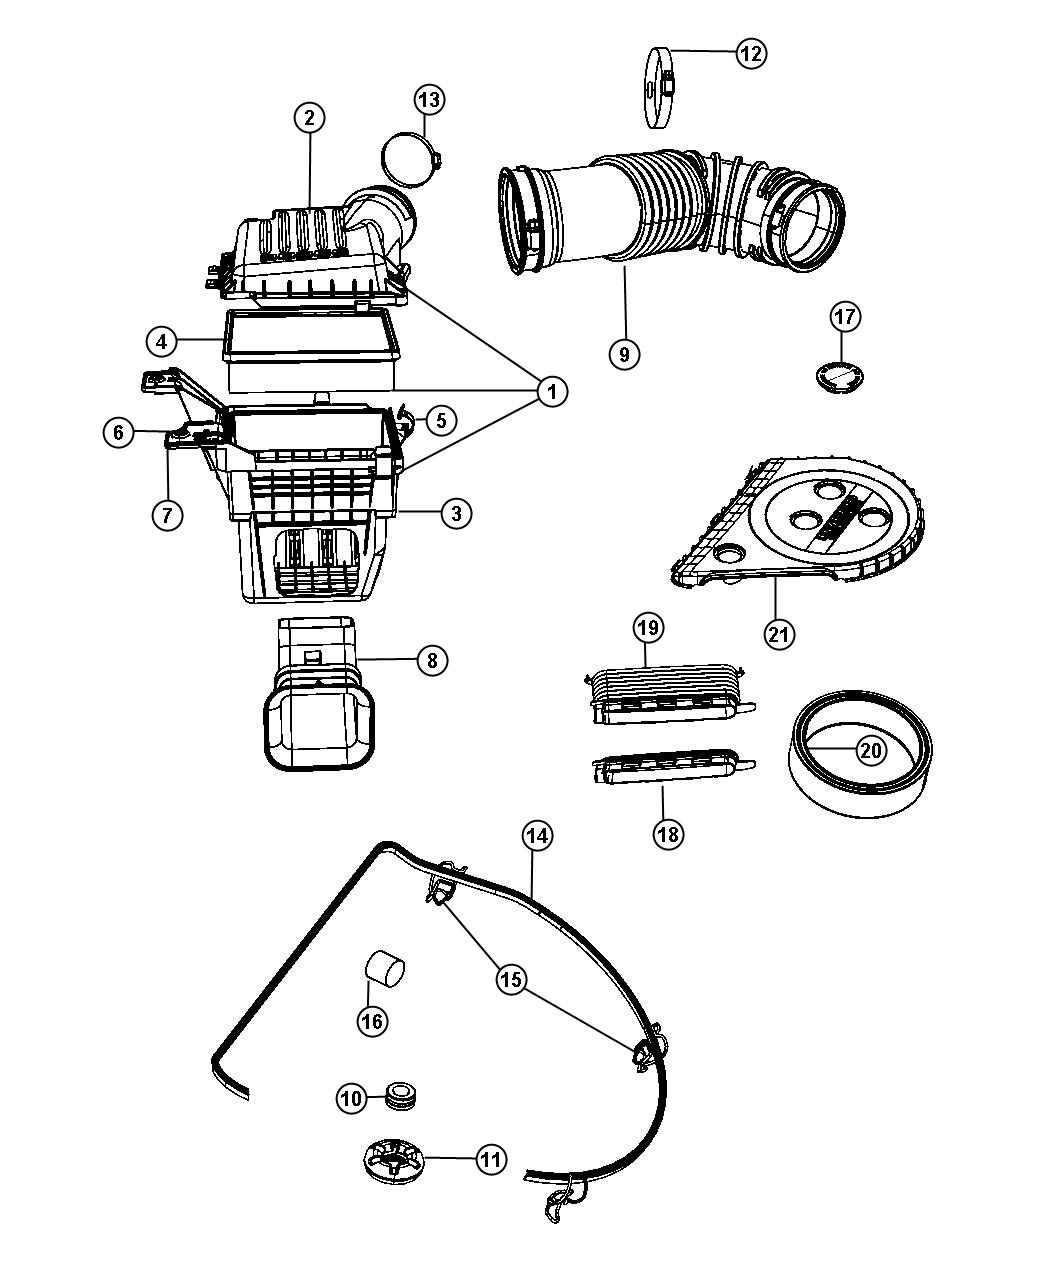 Chrysler 300 Latch Air Cleaner Export Argentina